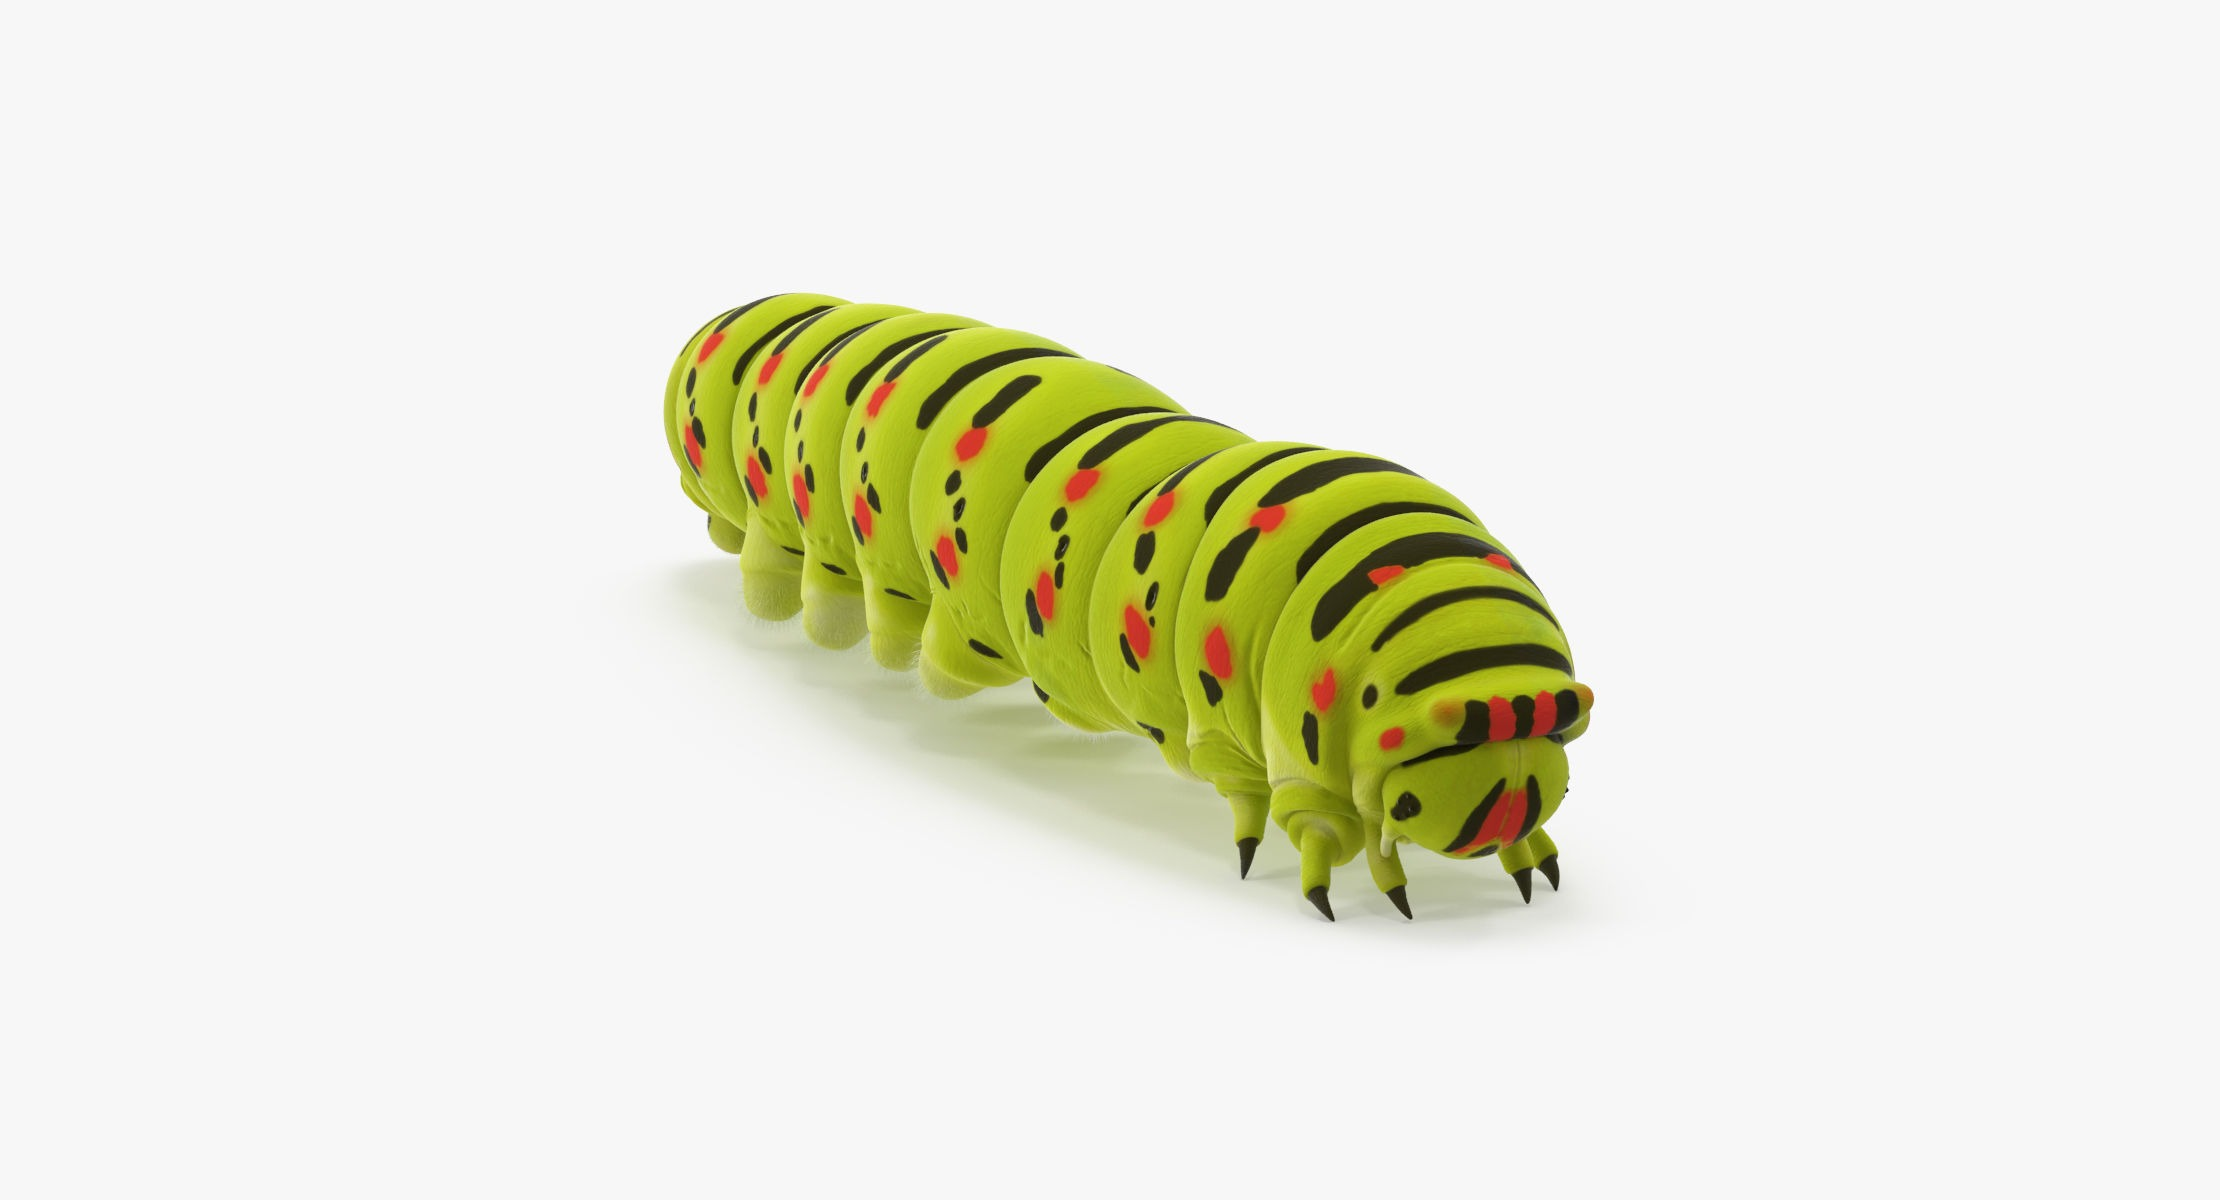 Caterpillar Walking - reel 1